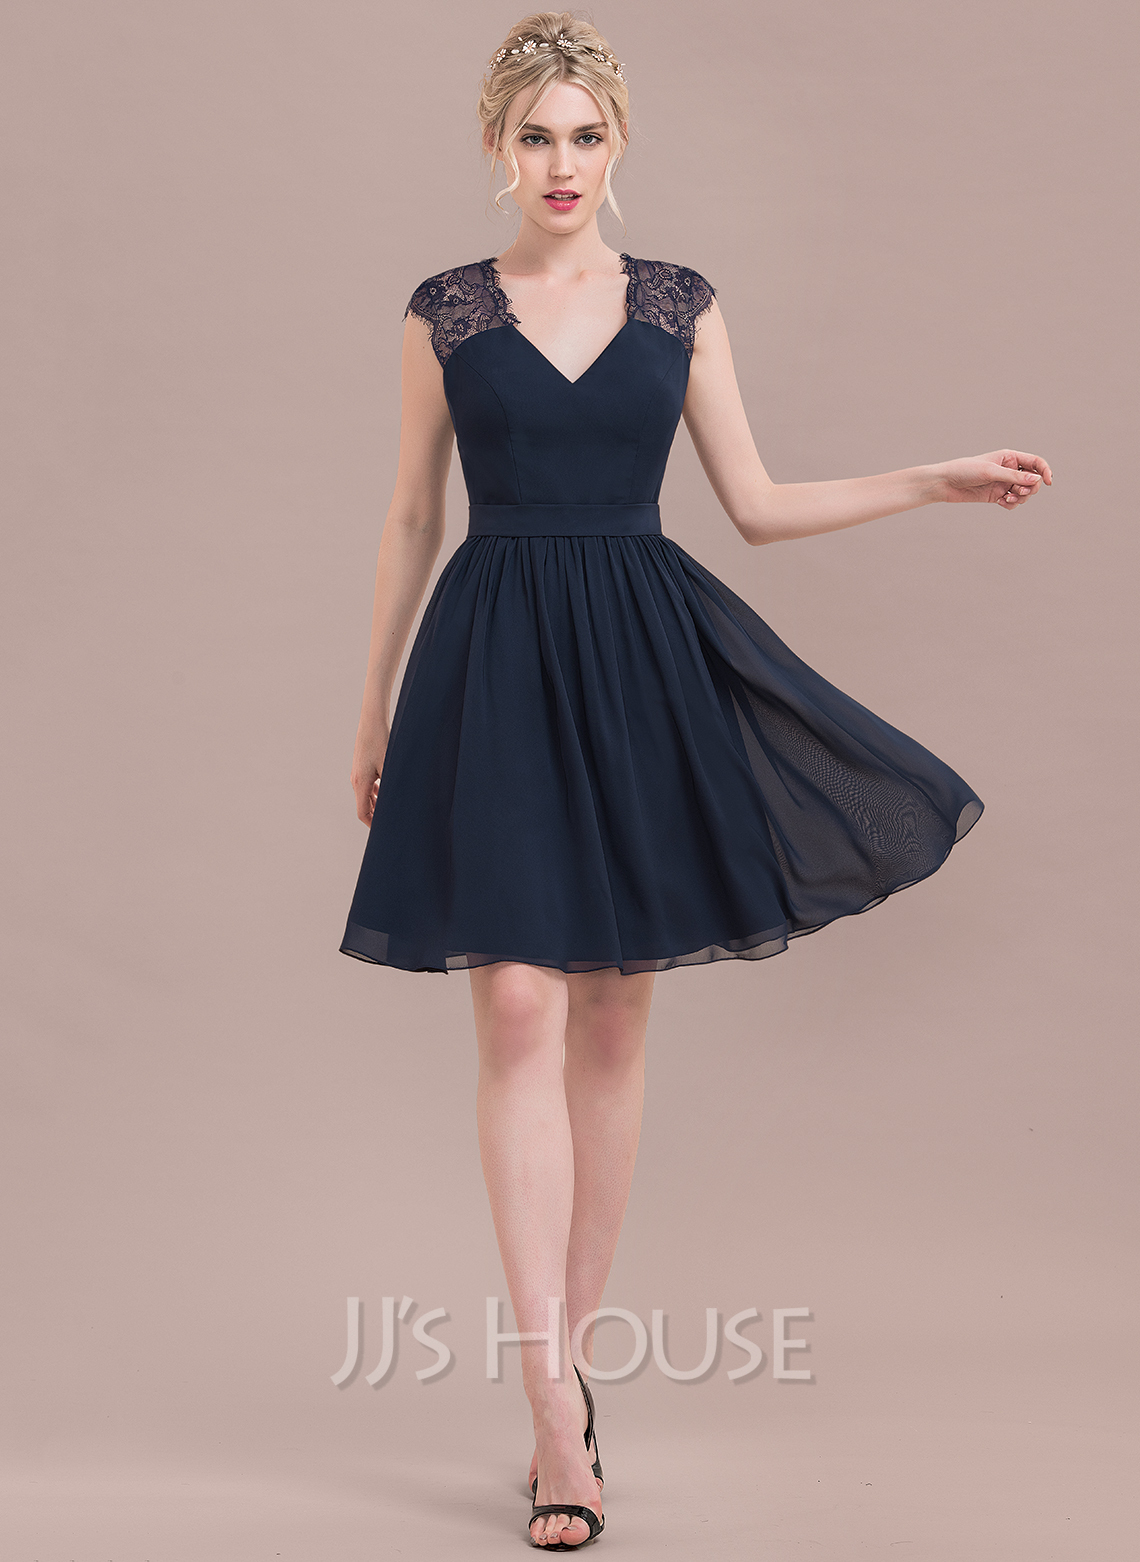 6a4ed3a22b A-Line Princess V-neck Knee-Length Chiffon Lace Cocktail Dress. Loading zoom